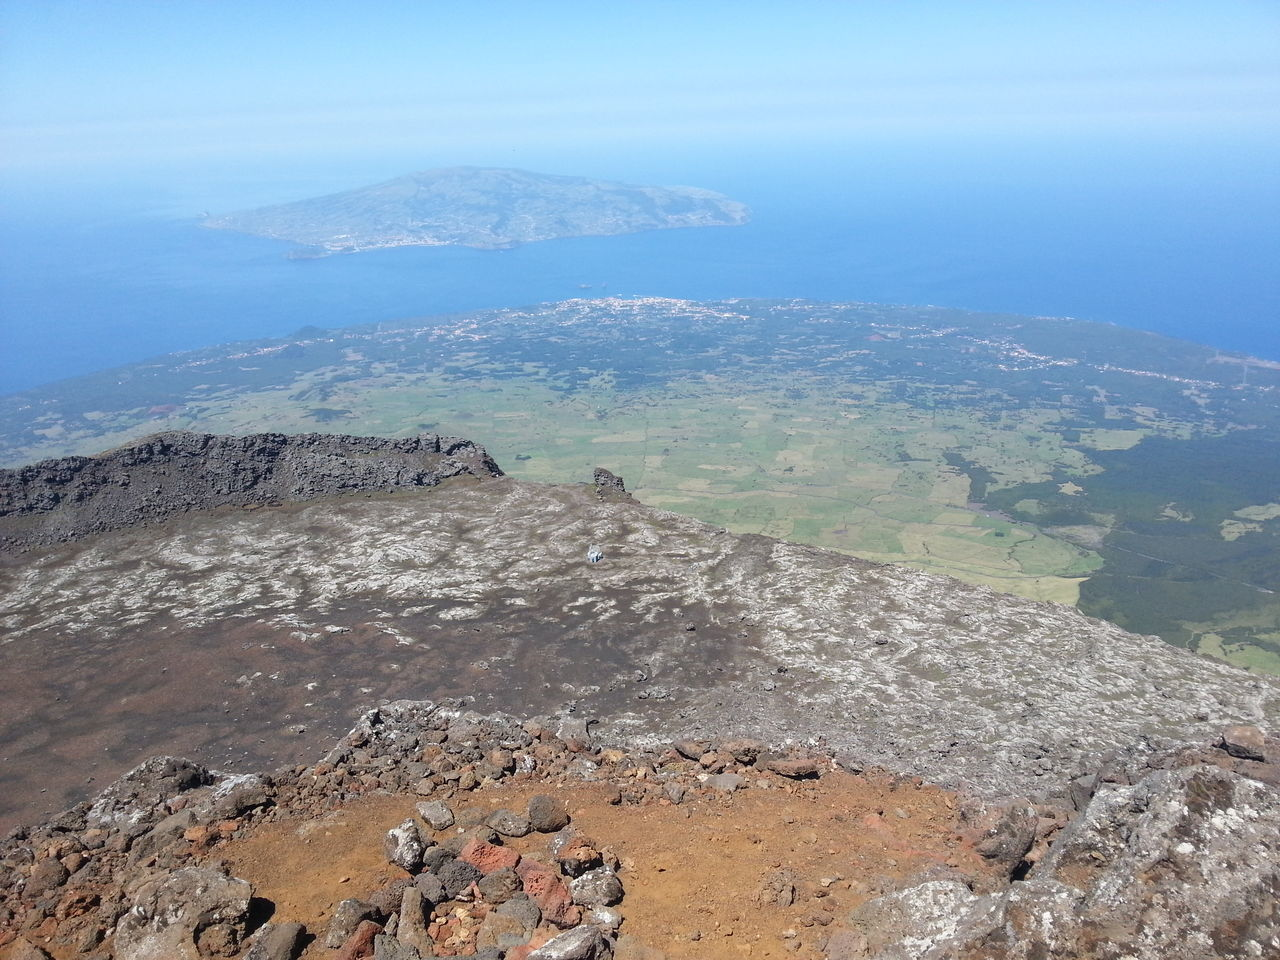 Arid Climate Azores Beauty In Nature Day Geology Landscape Lava Mountain Nature No People Non-urban Scene Outdoors Physical Geography Picoftheday Picotop Scenics Sky Tranquil Scene Tranquility Viewfrommountain